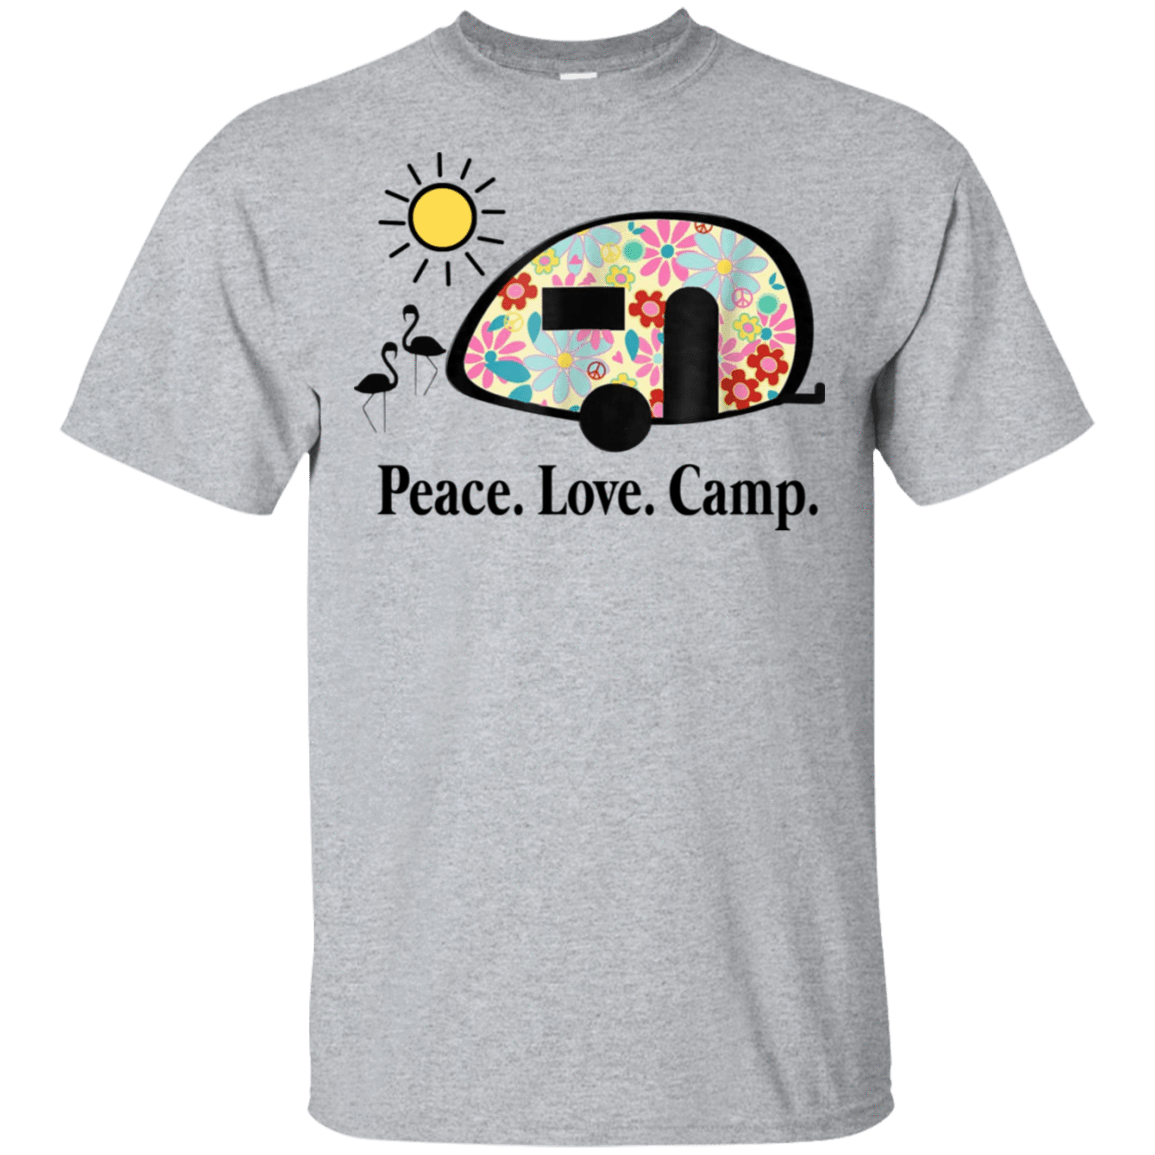 Peace. Love. Camp. Camping 22-115-73889463-254 - Tee Ript